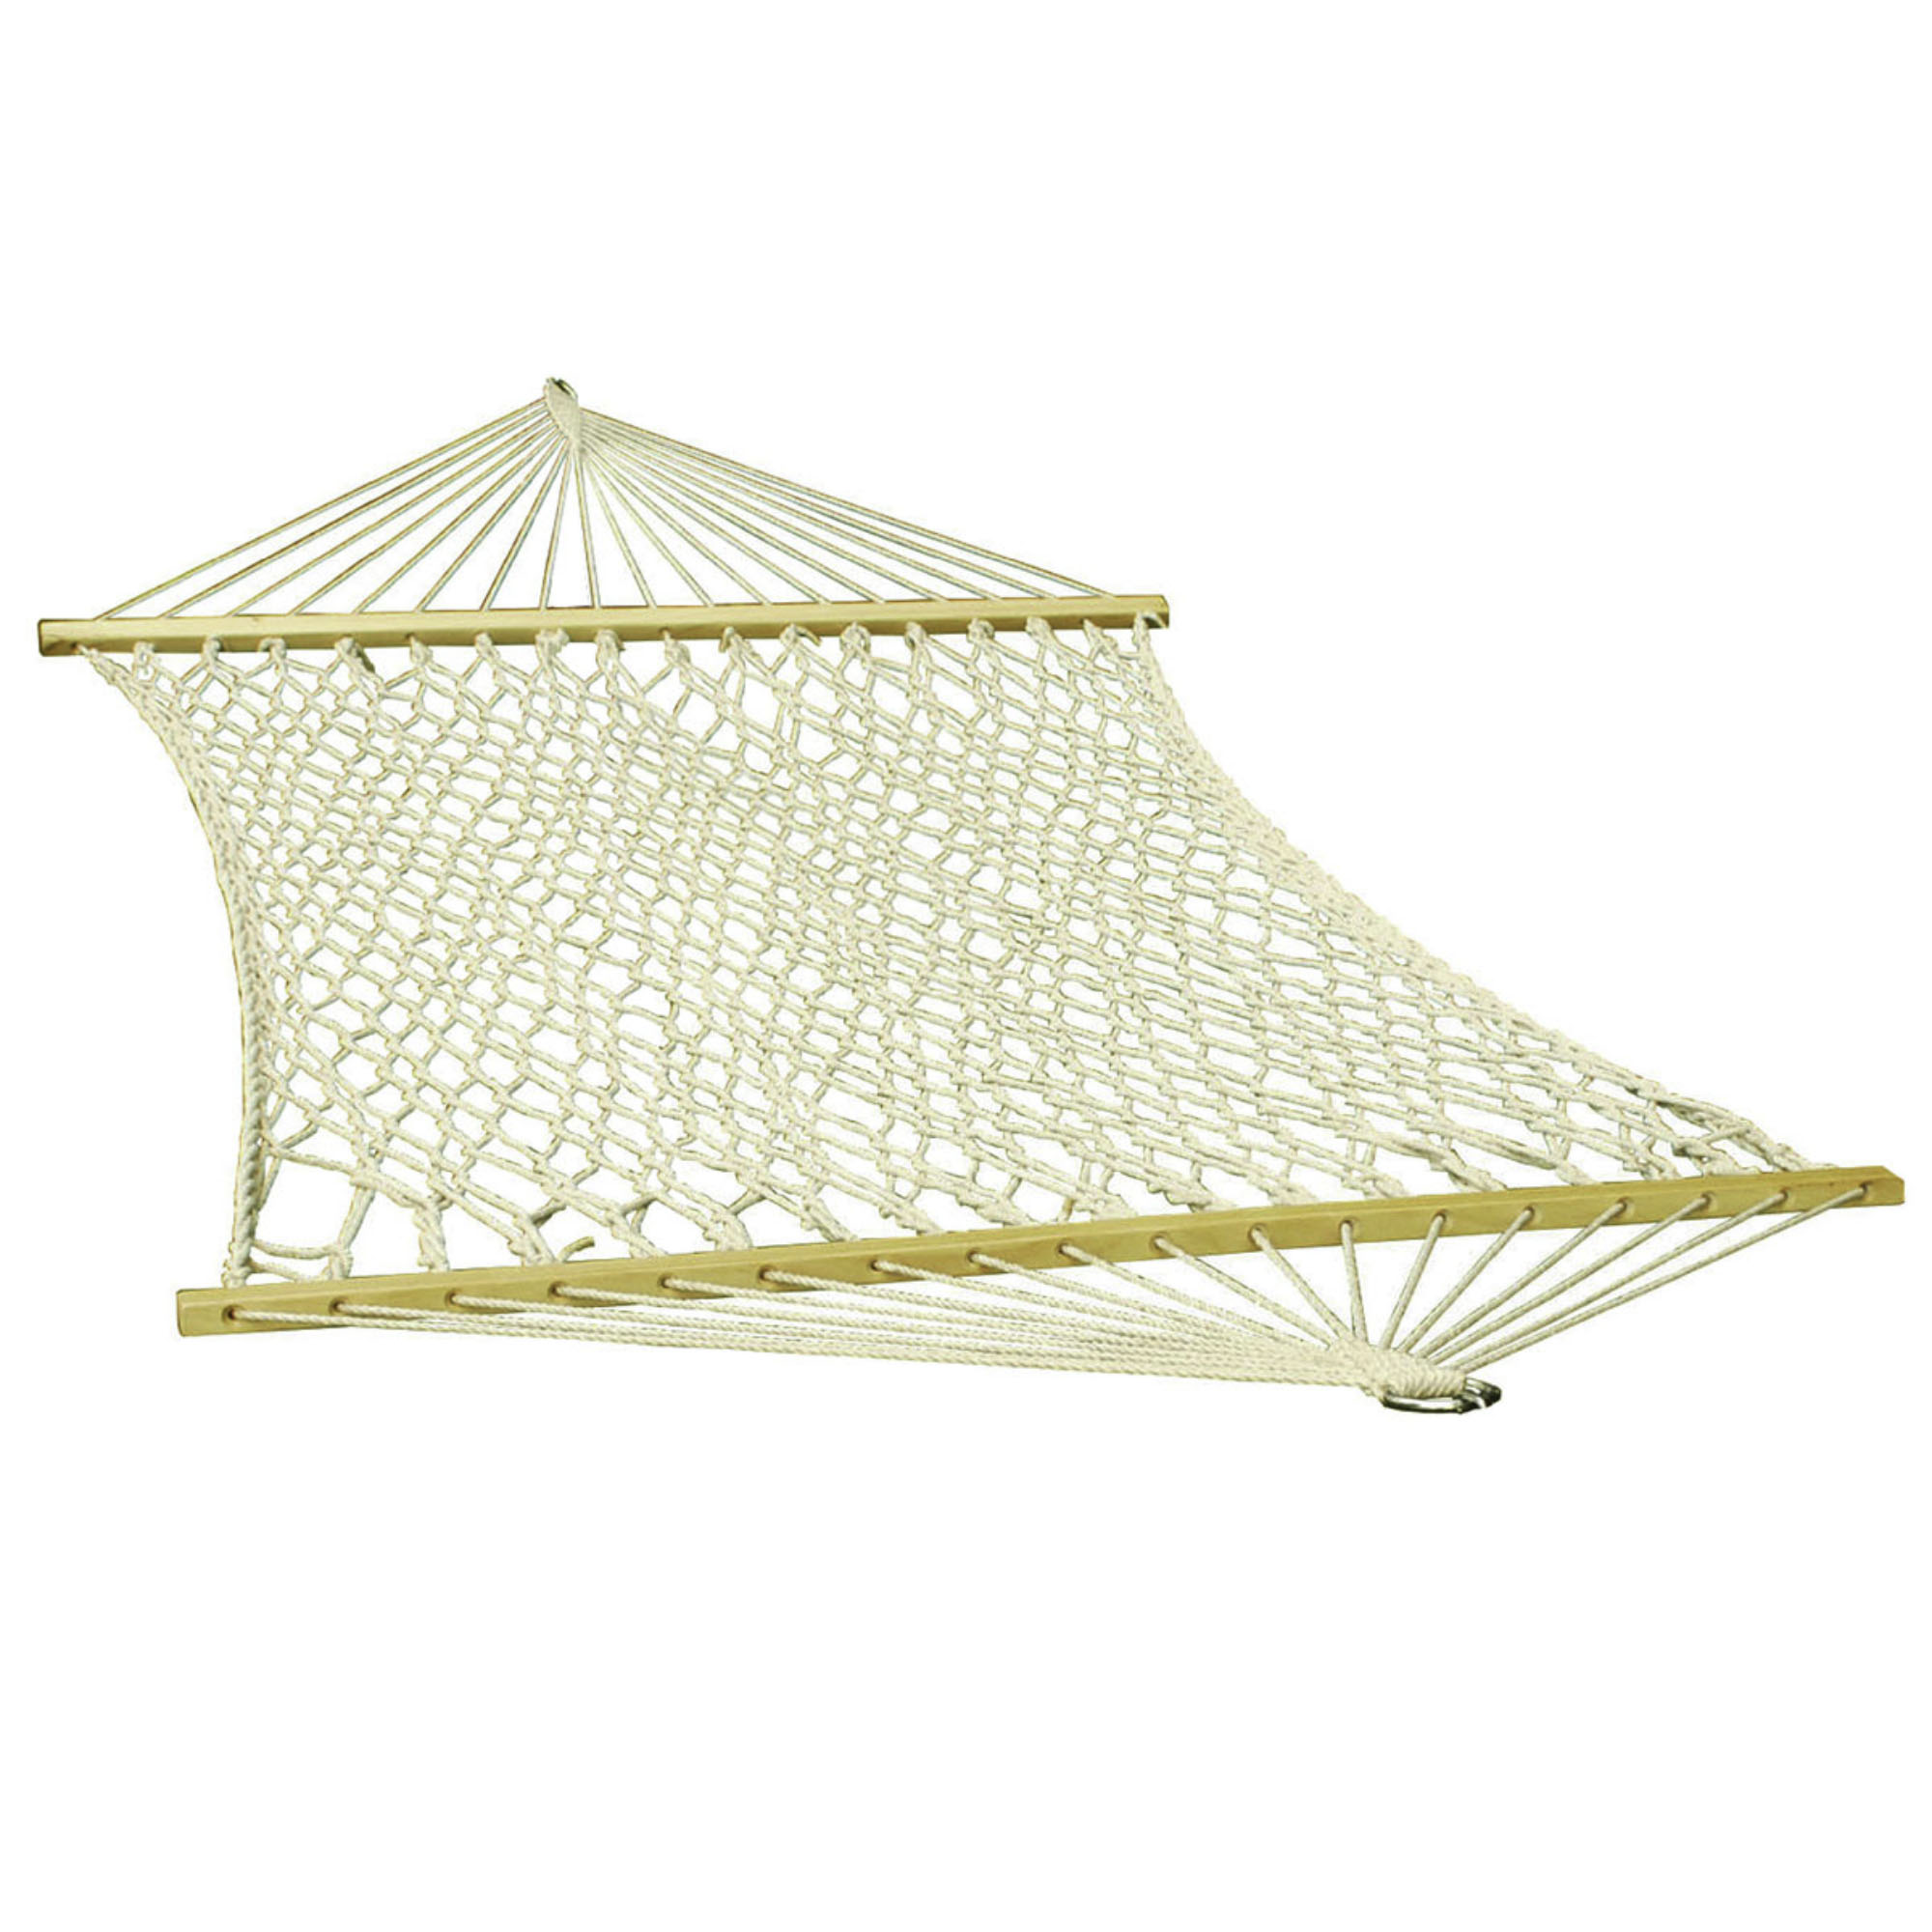 Cotton Rope Hammock Off White